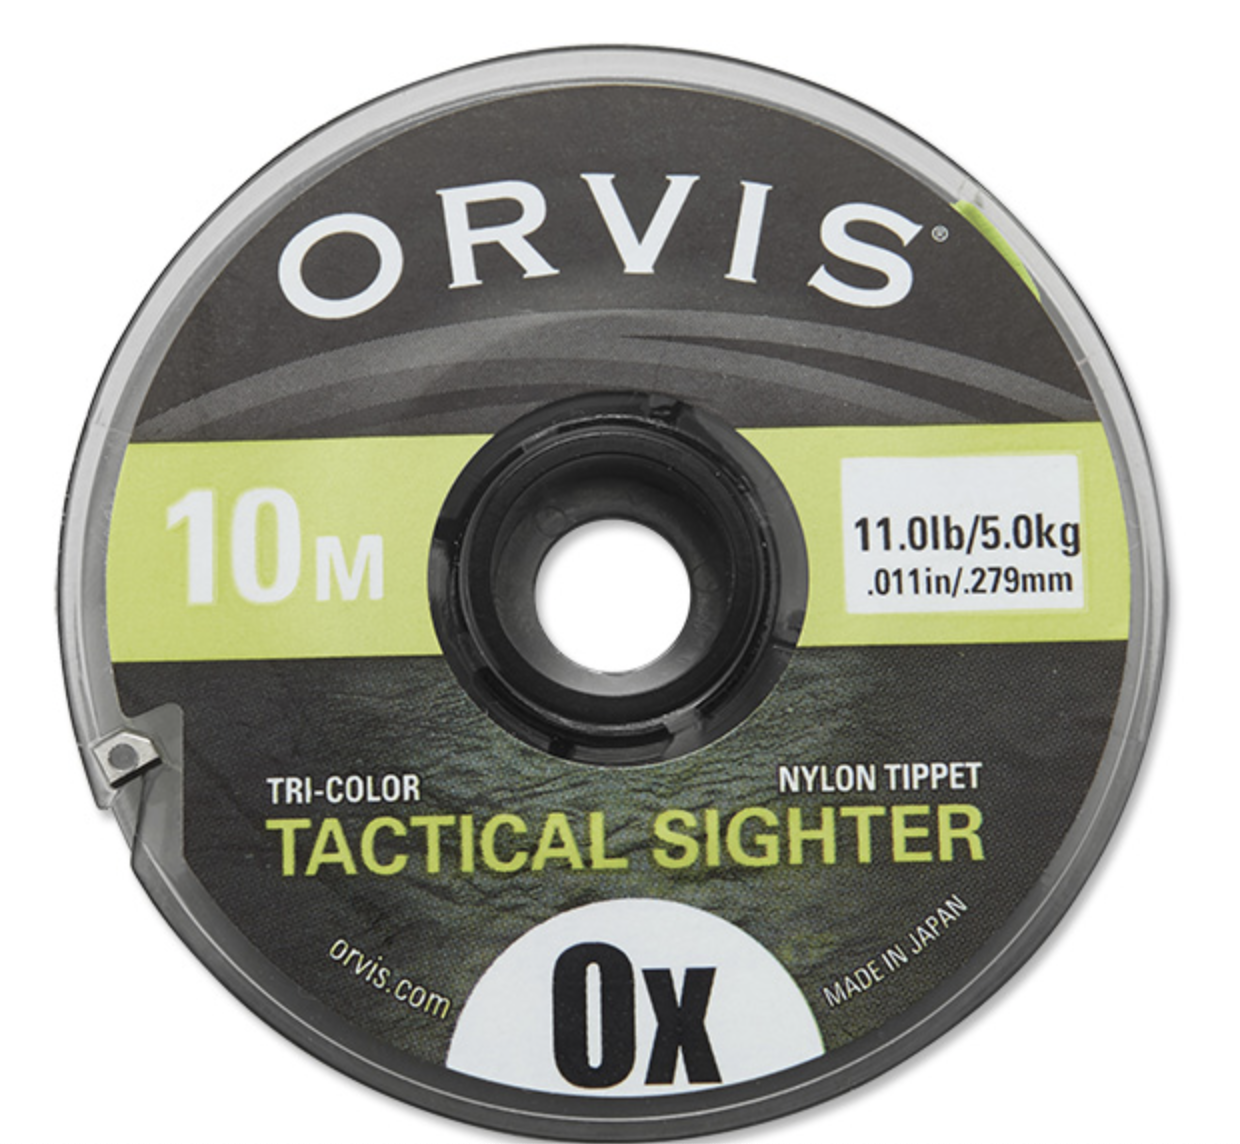 Orivis Tactical Sighter Tippet